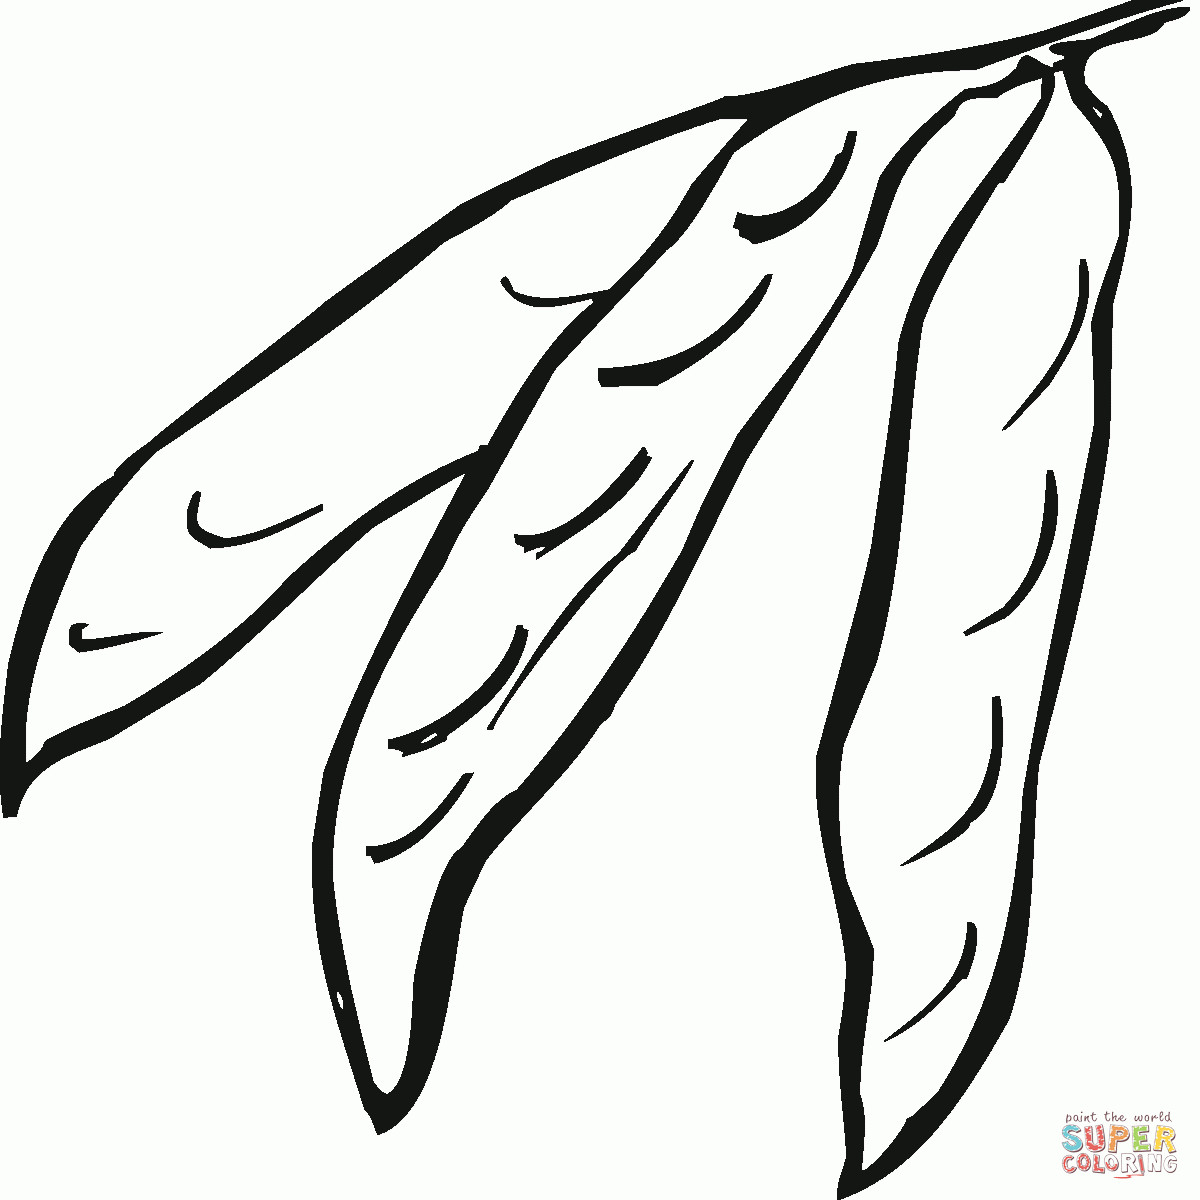 Coloring page green many. Bean clipart winged bean